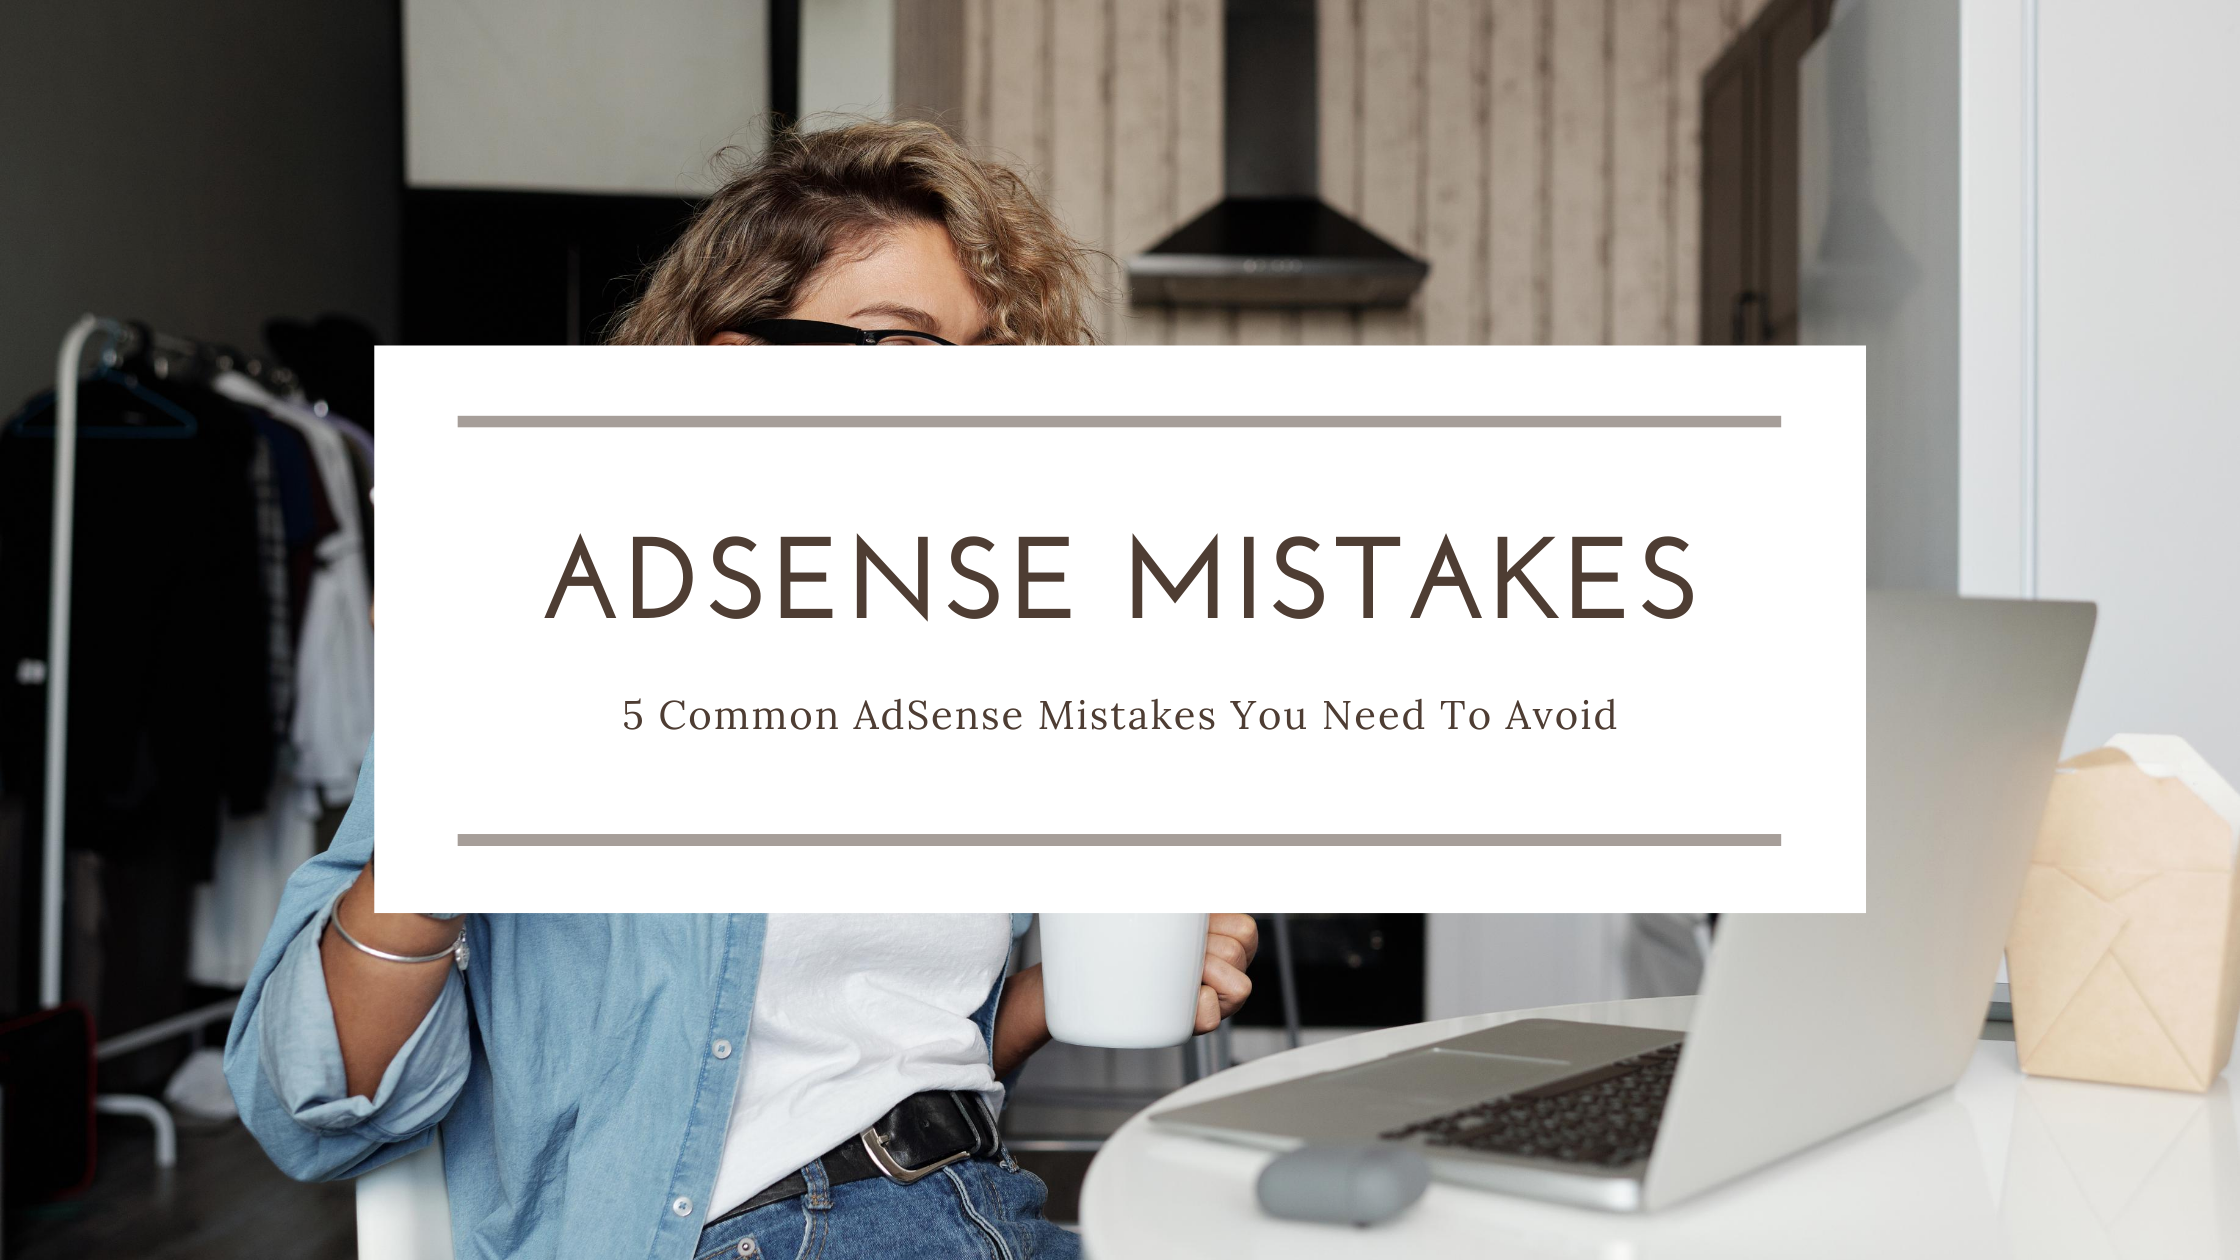 5 Common AdSense Mistakes You Need To Avoid